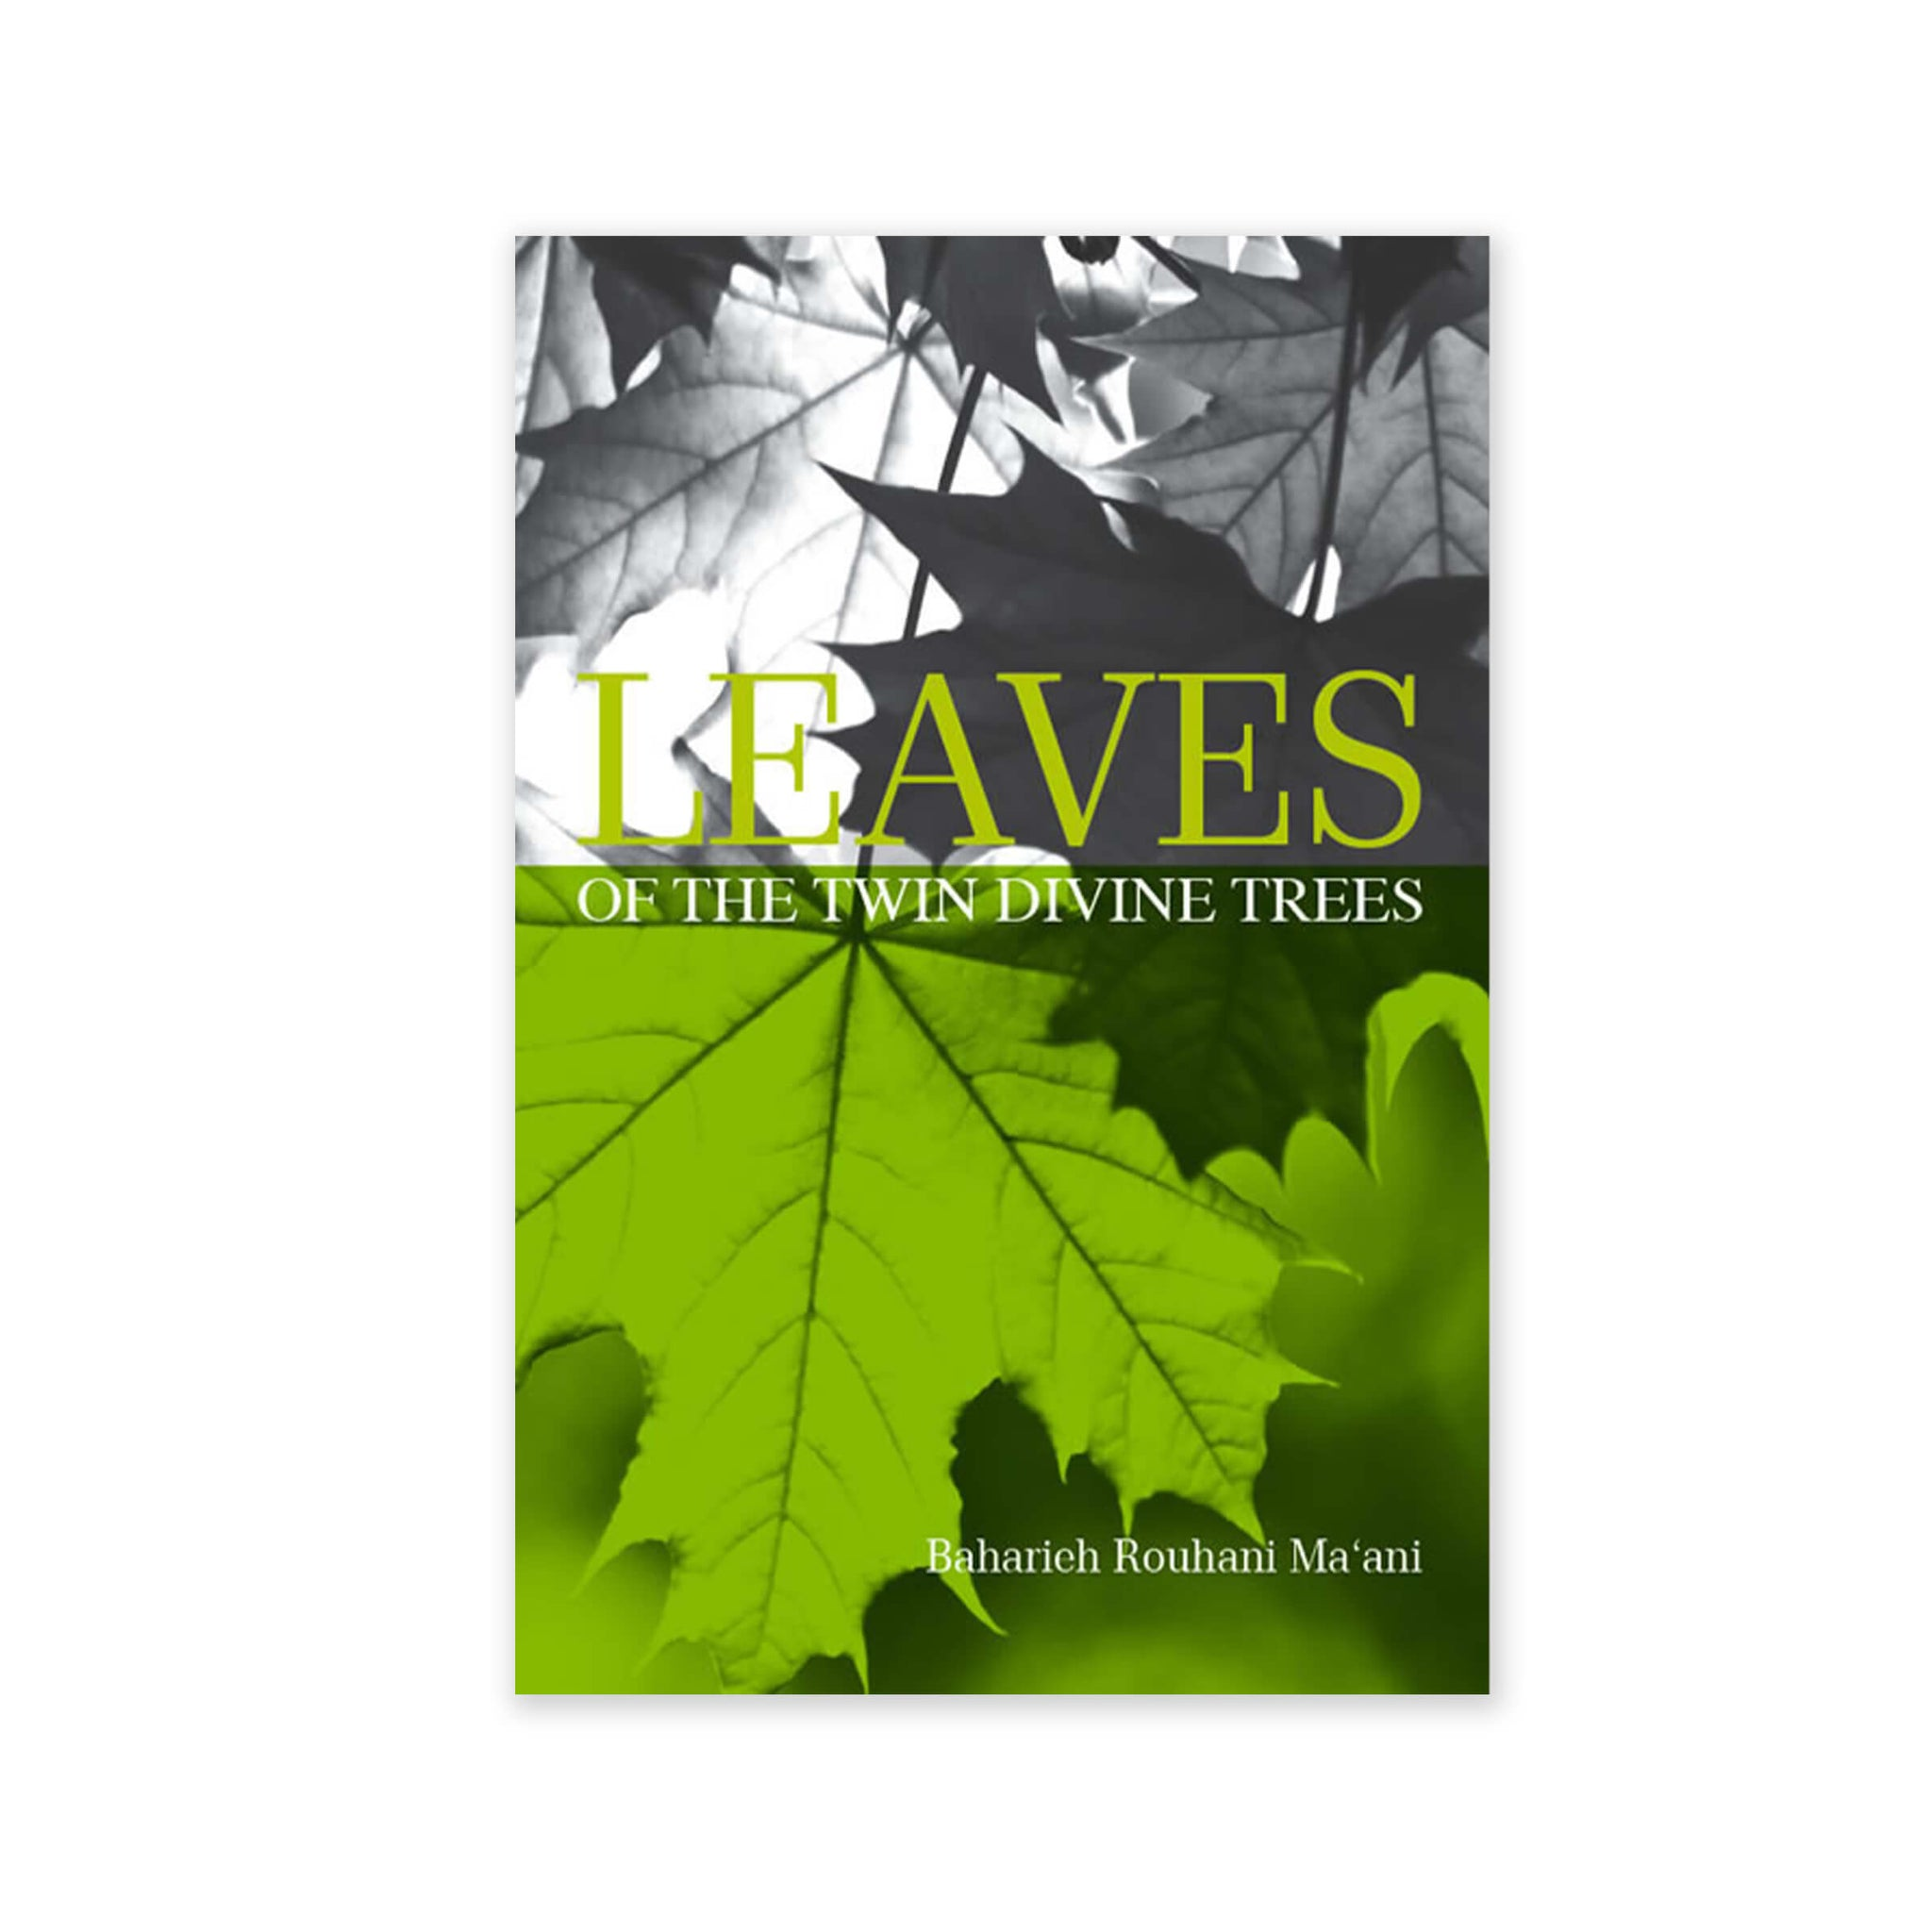 Leaves of Twin Divine Trees - An In-depth Study of the Lives of Women Closely Related to the Bab and Baha'u'llah